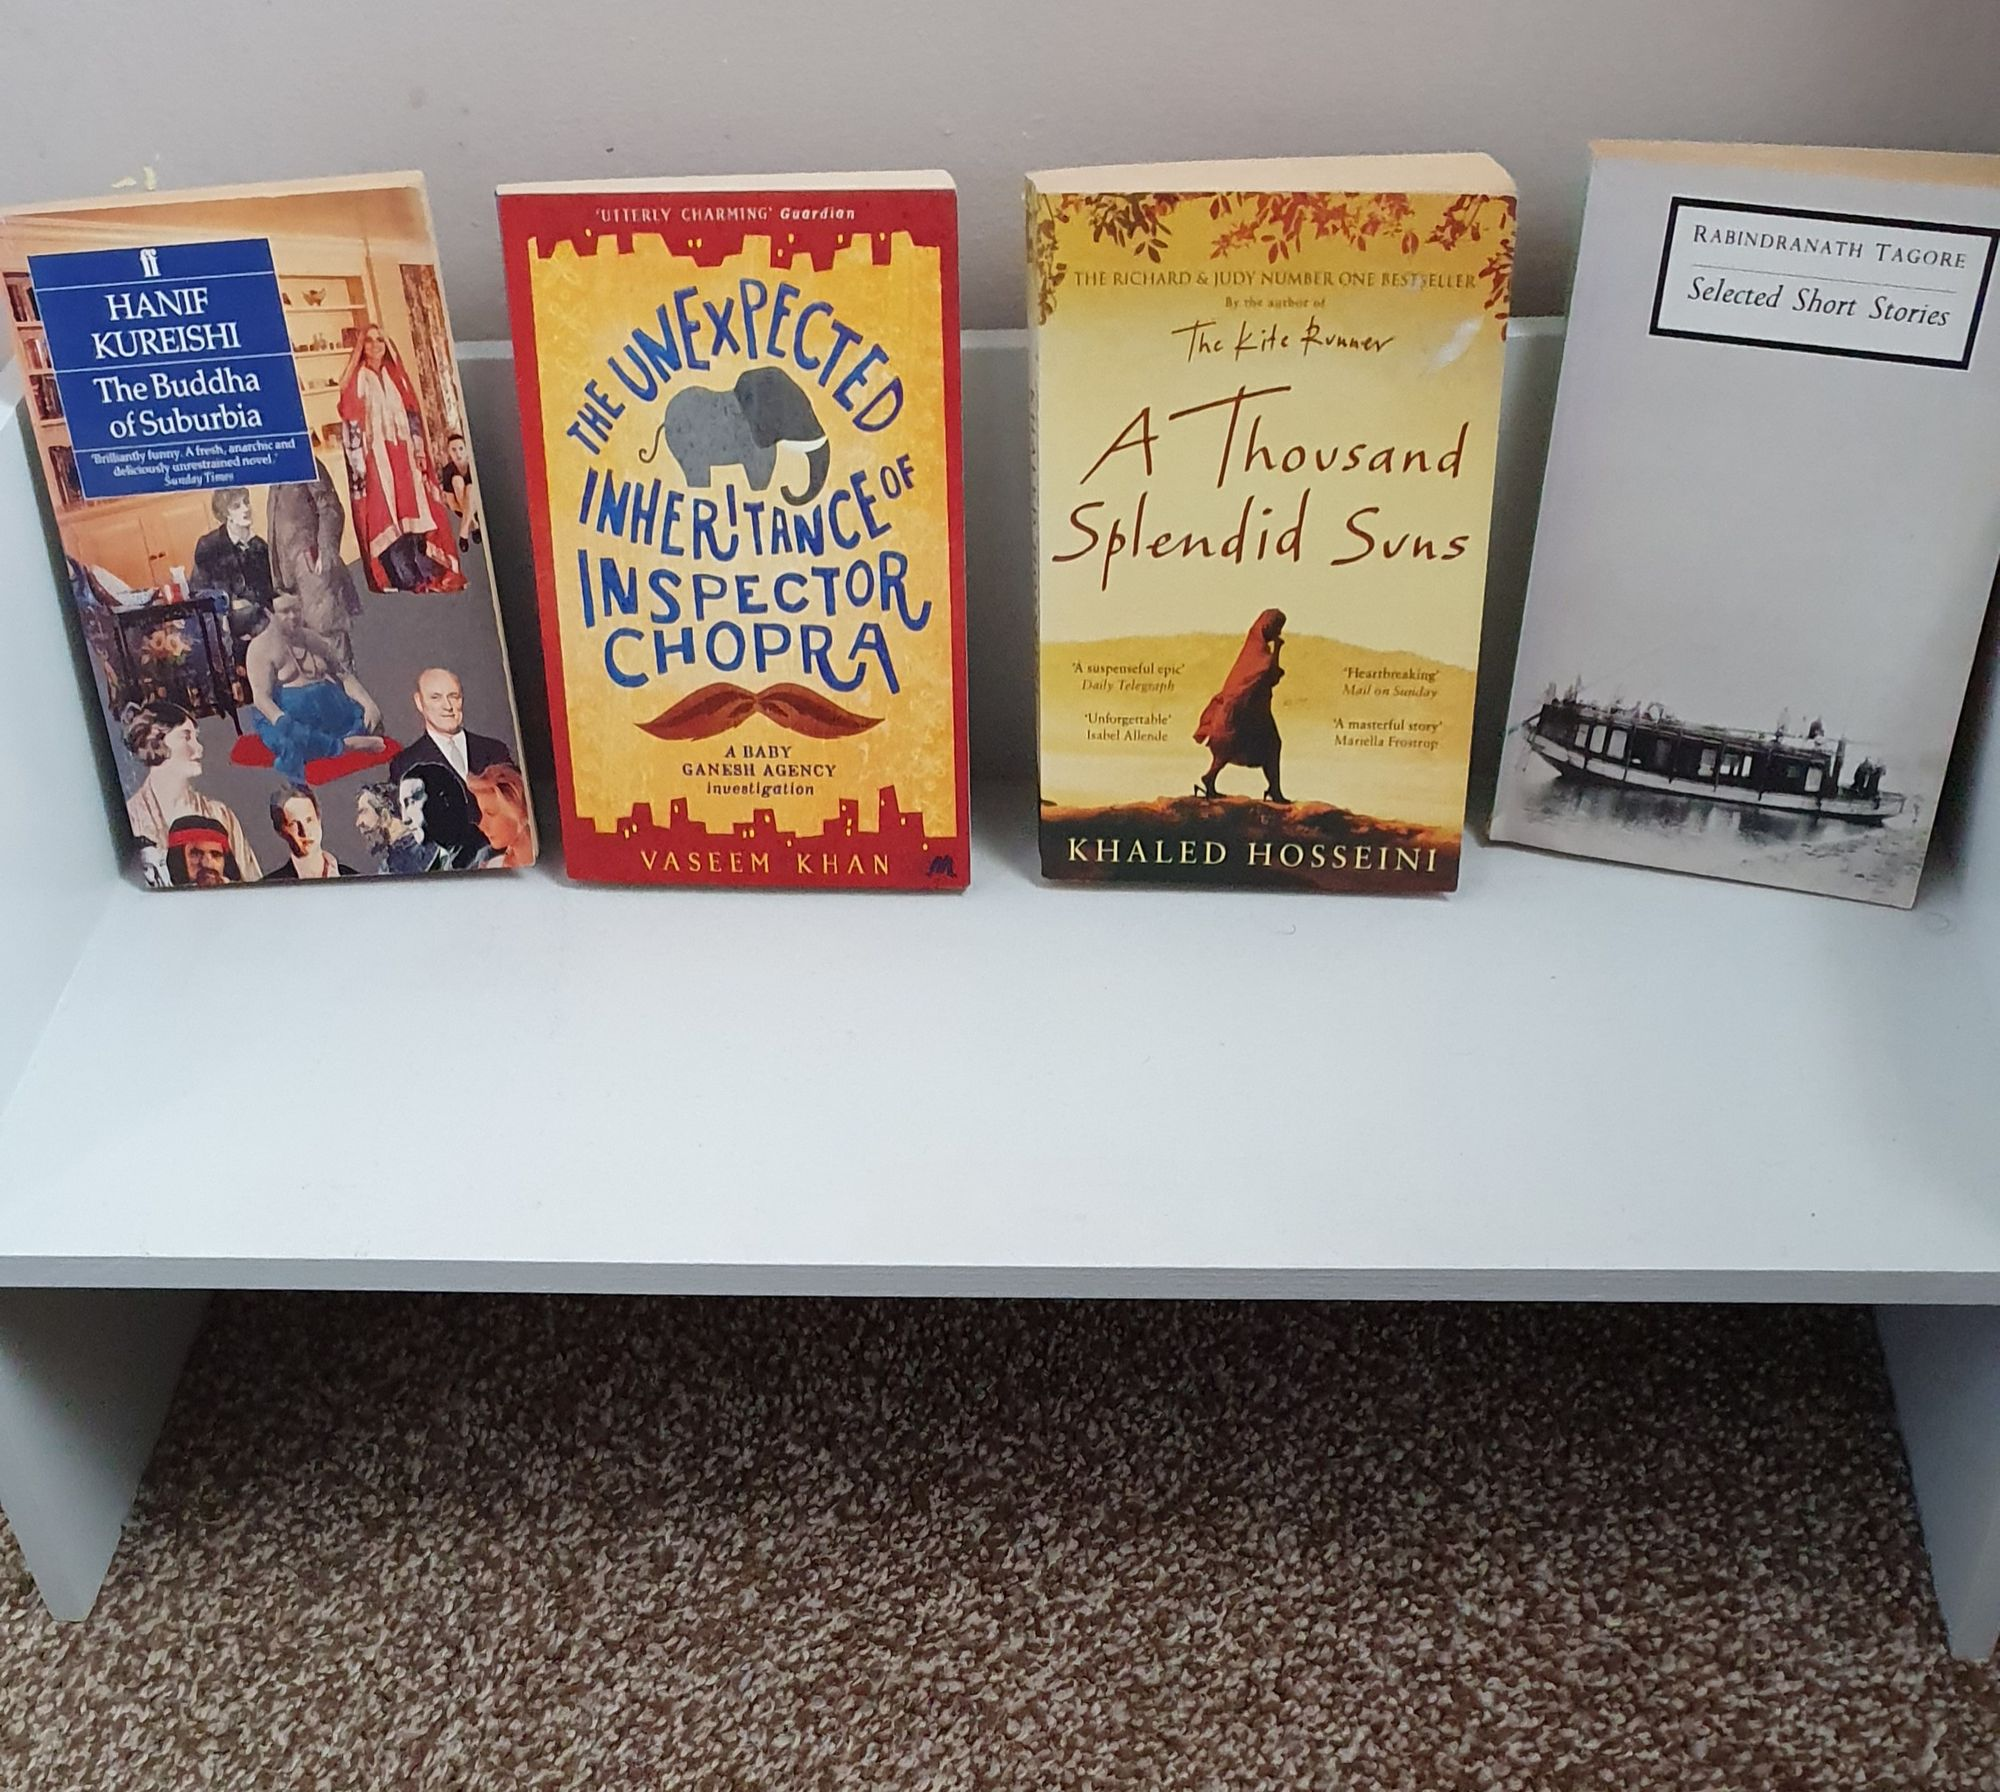 Selection of books by male authors on a free standing shelf